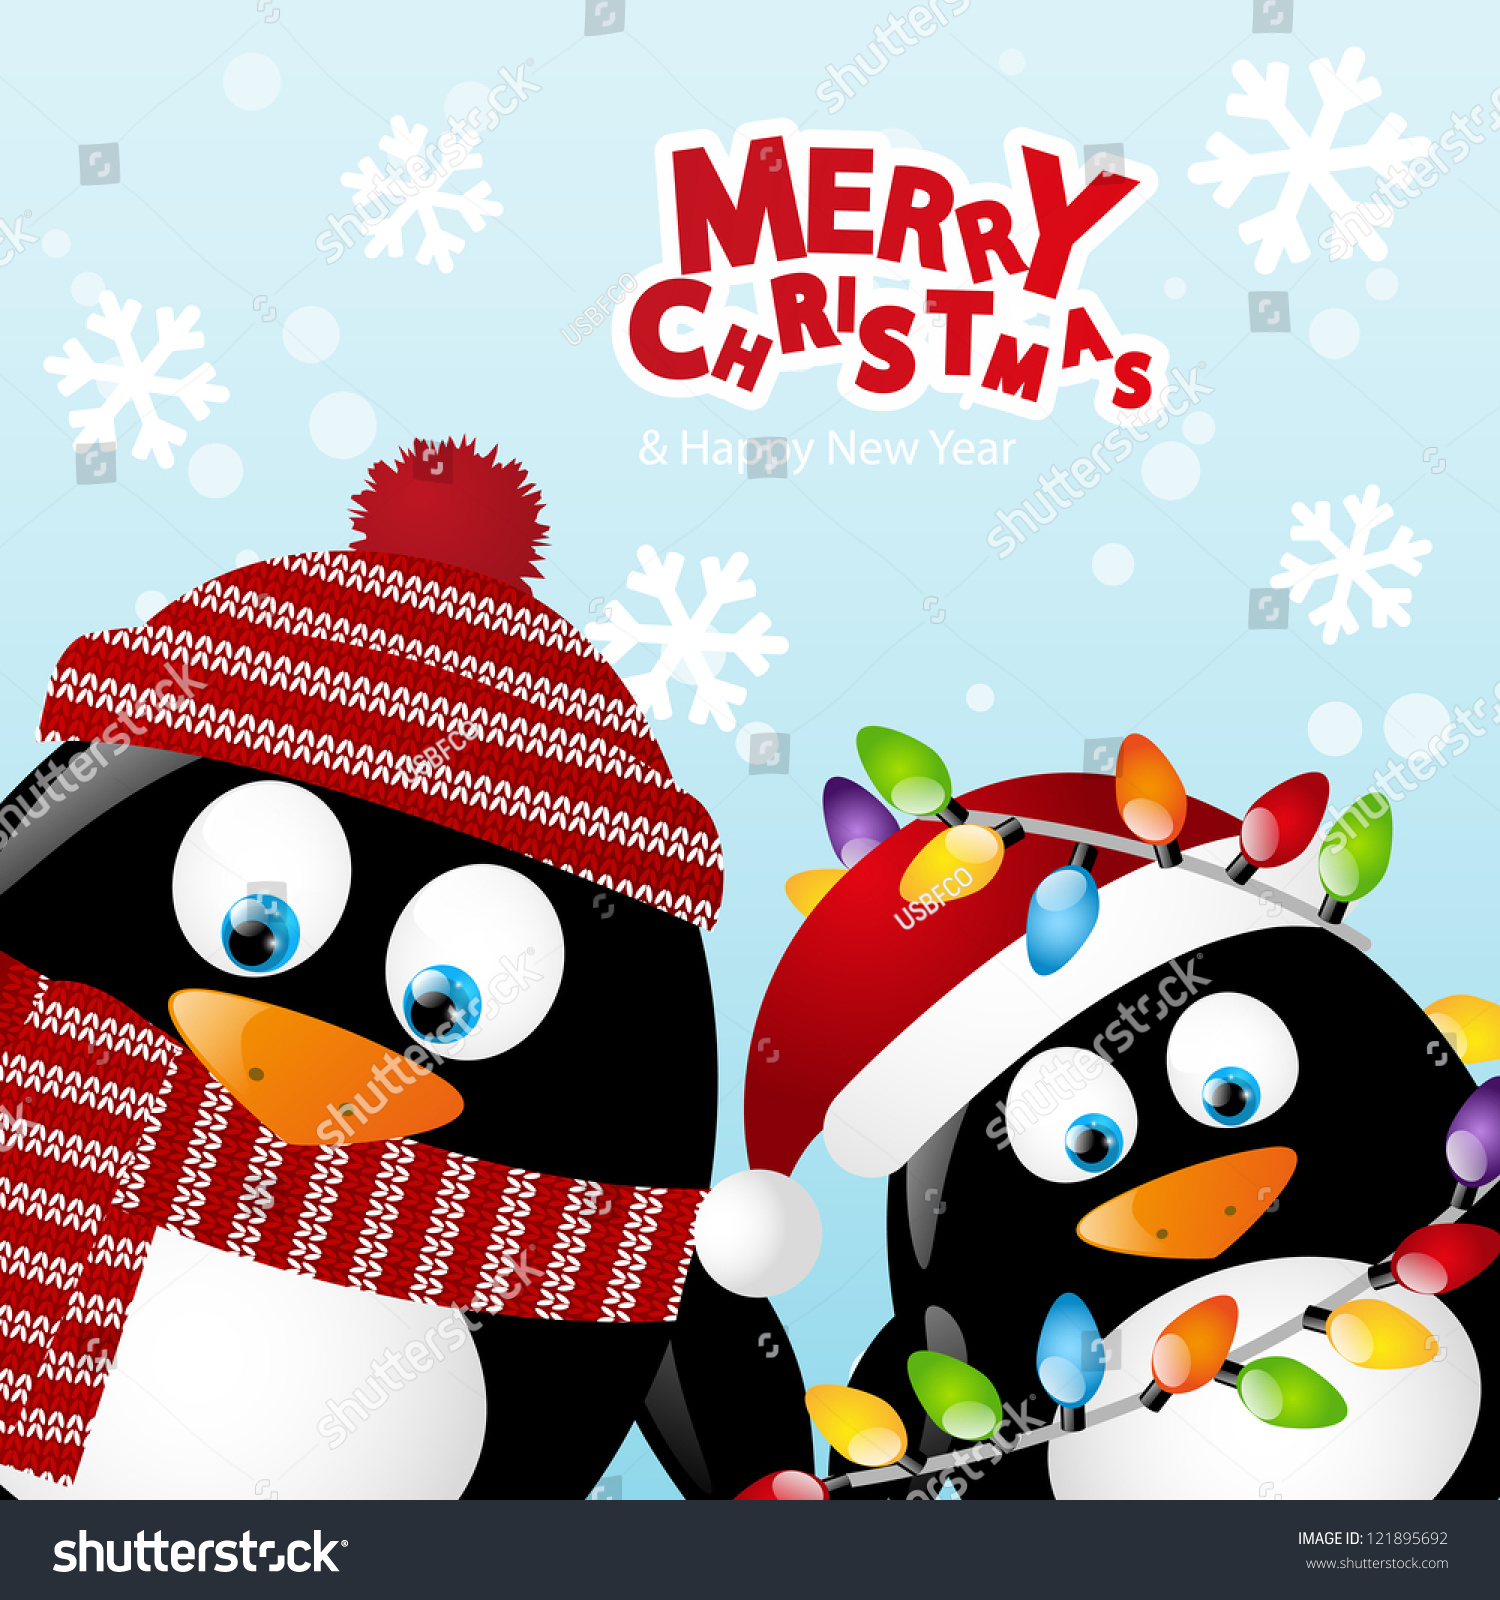 merry christmas card two penguins stock vector royalty free